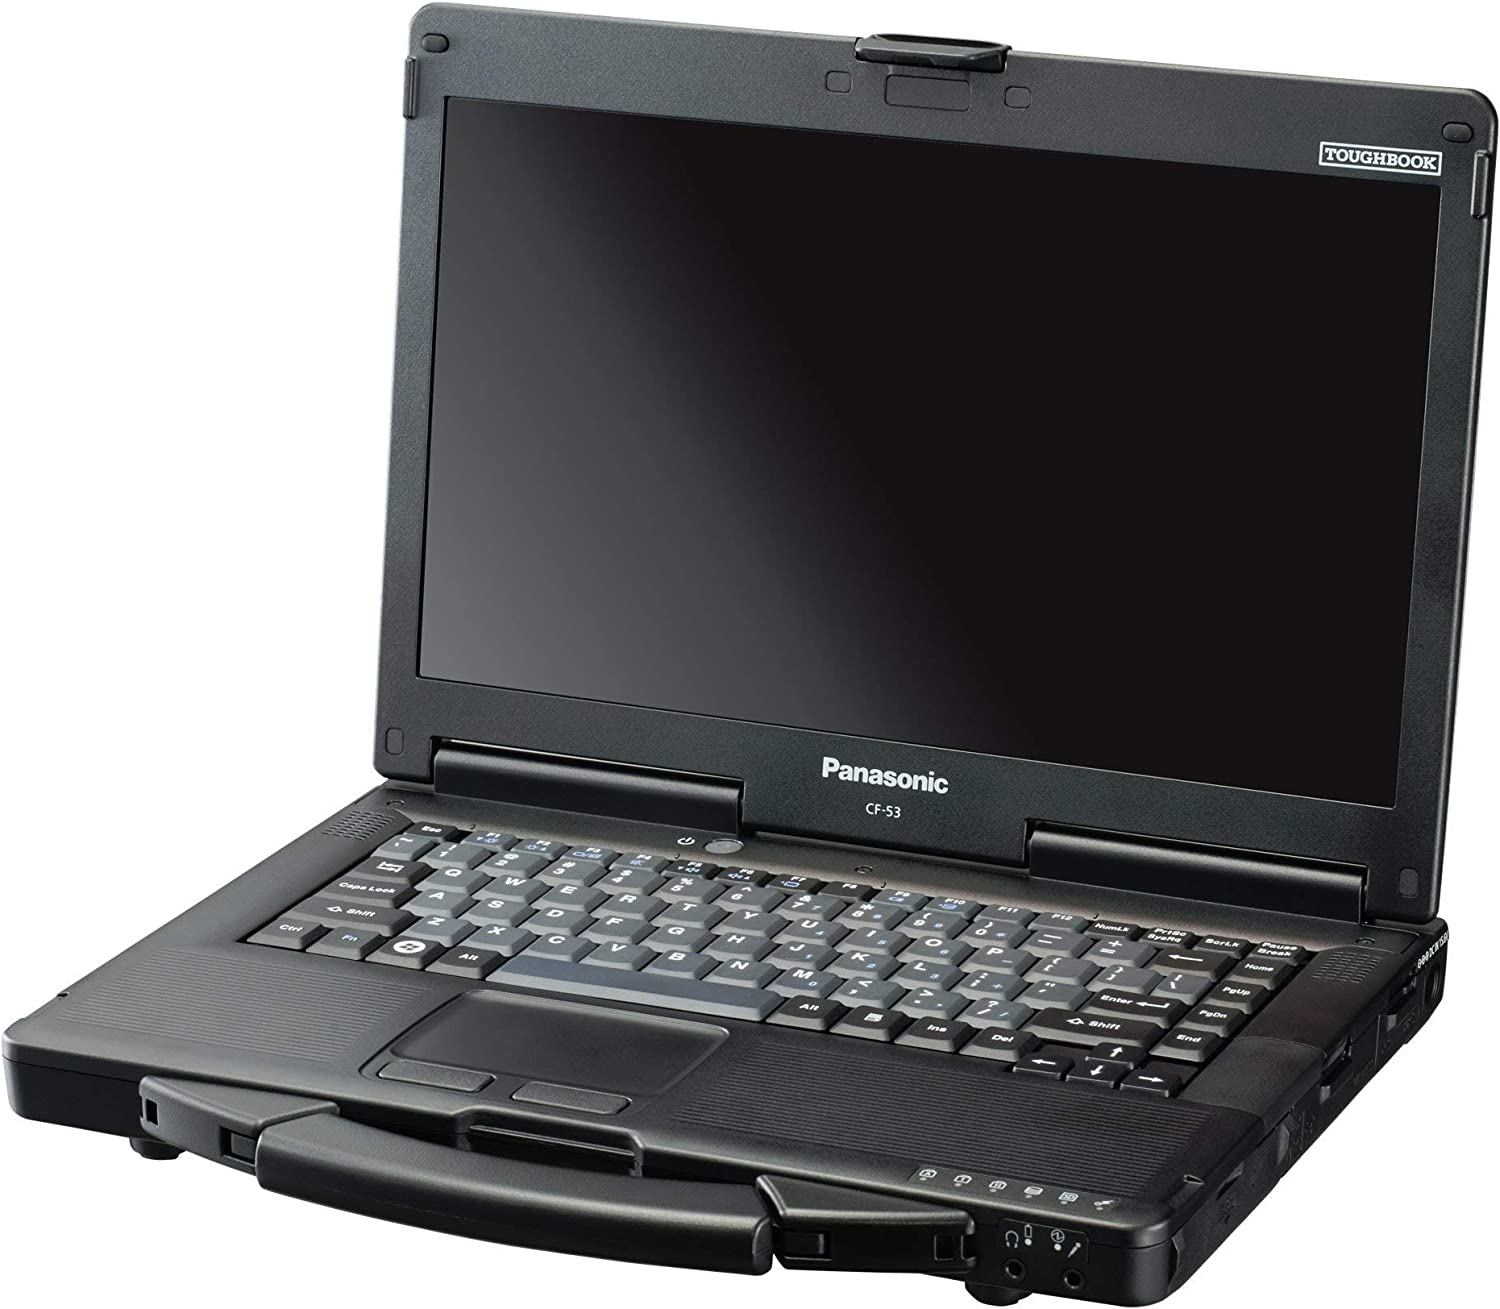 "Panasonic Toughbook CF-53 MK4, i5-4310M @2.00GHz, 14"" HD, 8GB, 500 GB, Windows 10 Pro, WiFi, Bluetooth (Renewed)"